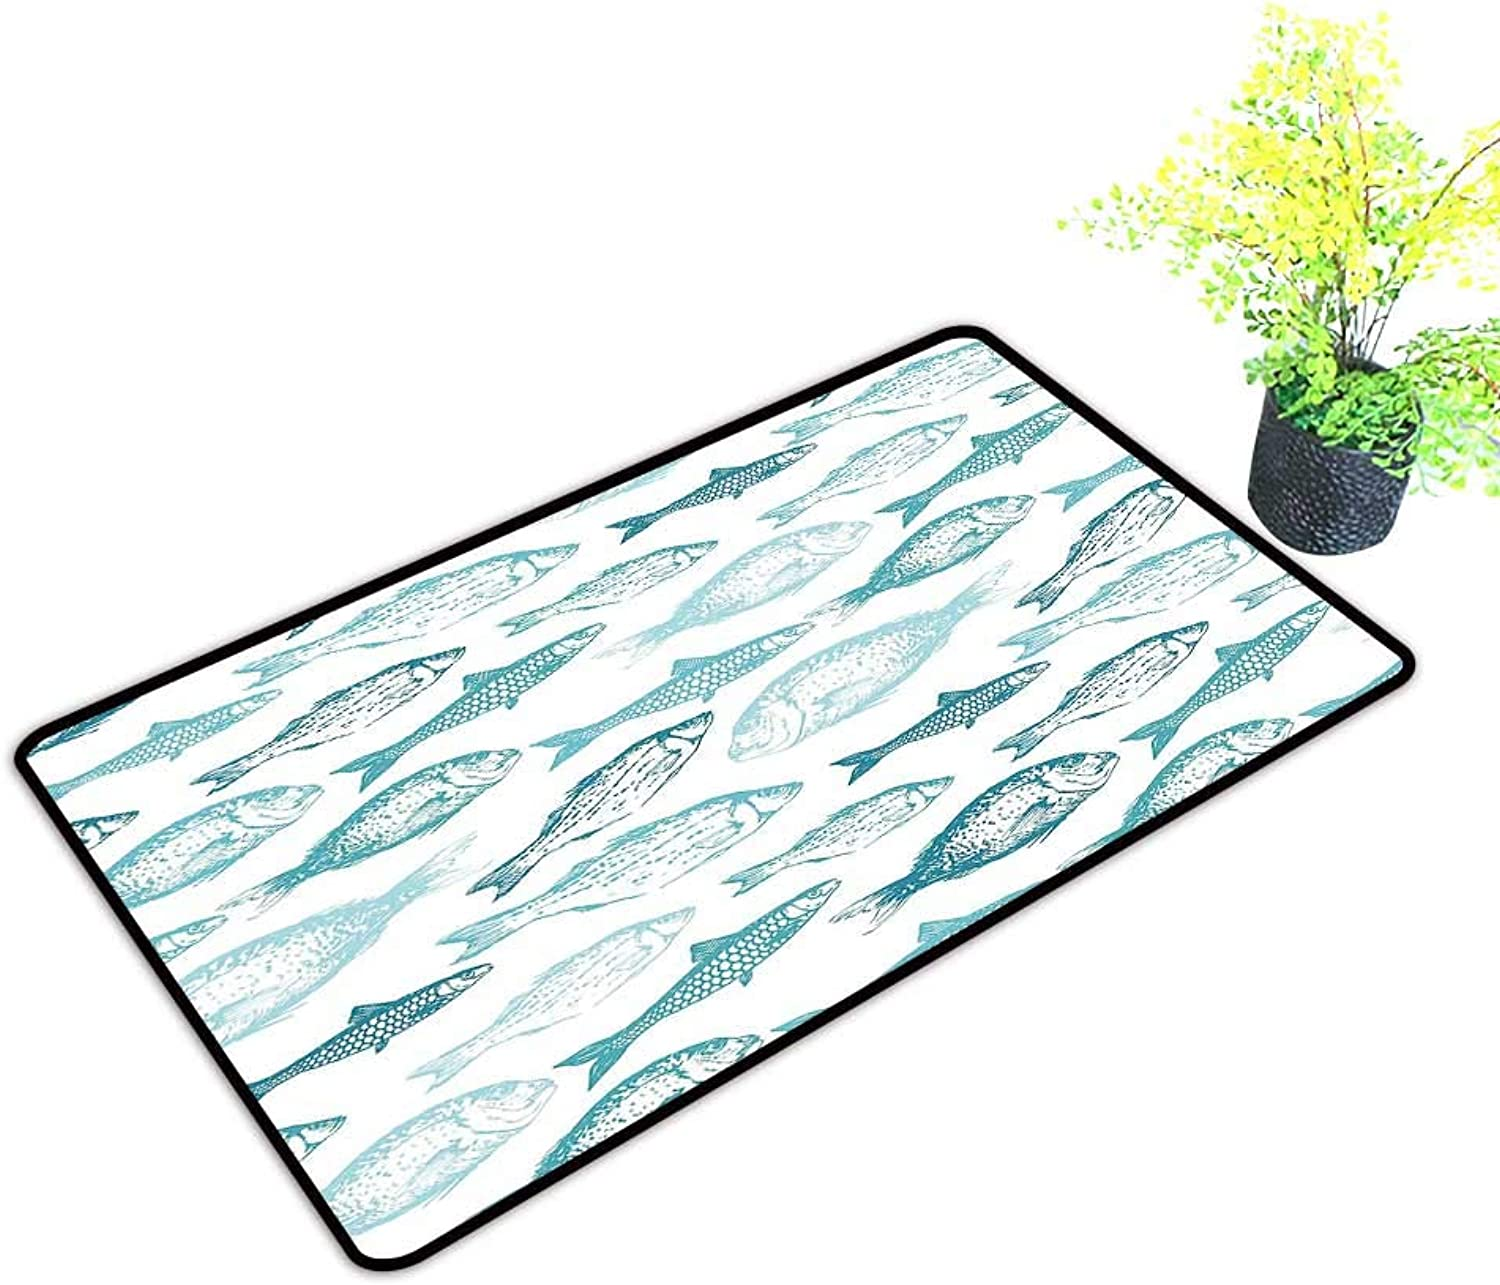 Gmnalahome Large Door Mats shoes Scraper Mediterranean Creatures in Soft Pastel Monochrome color Illustration Light bluee Use for Front Door Entrance W39 x H19 INCH